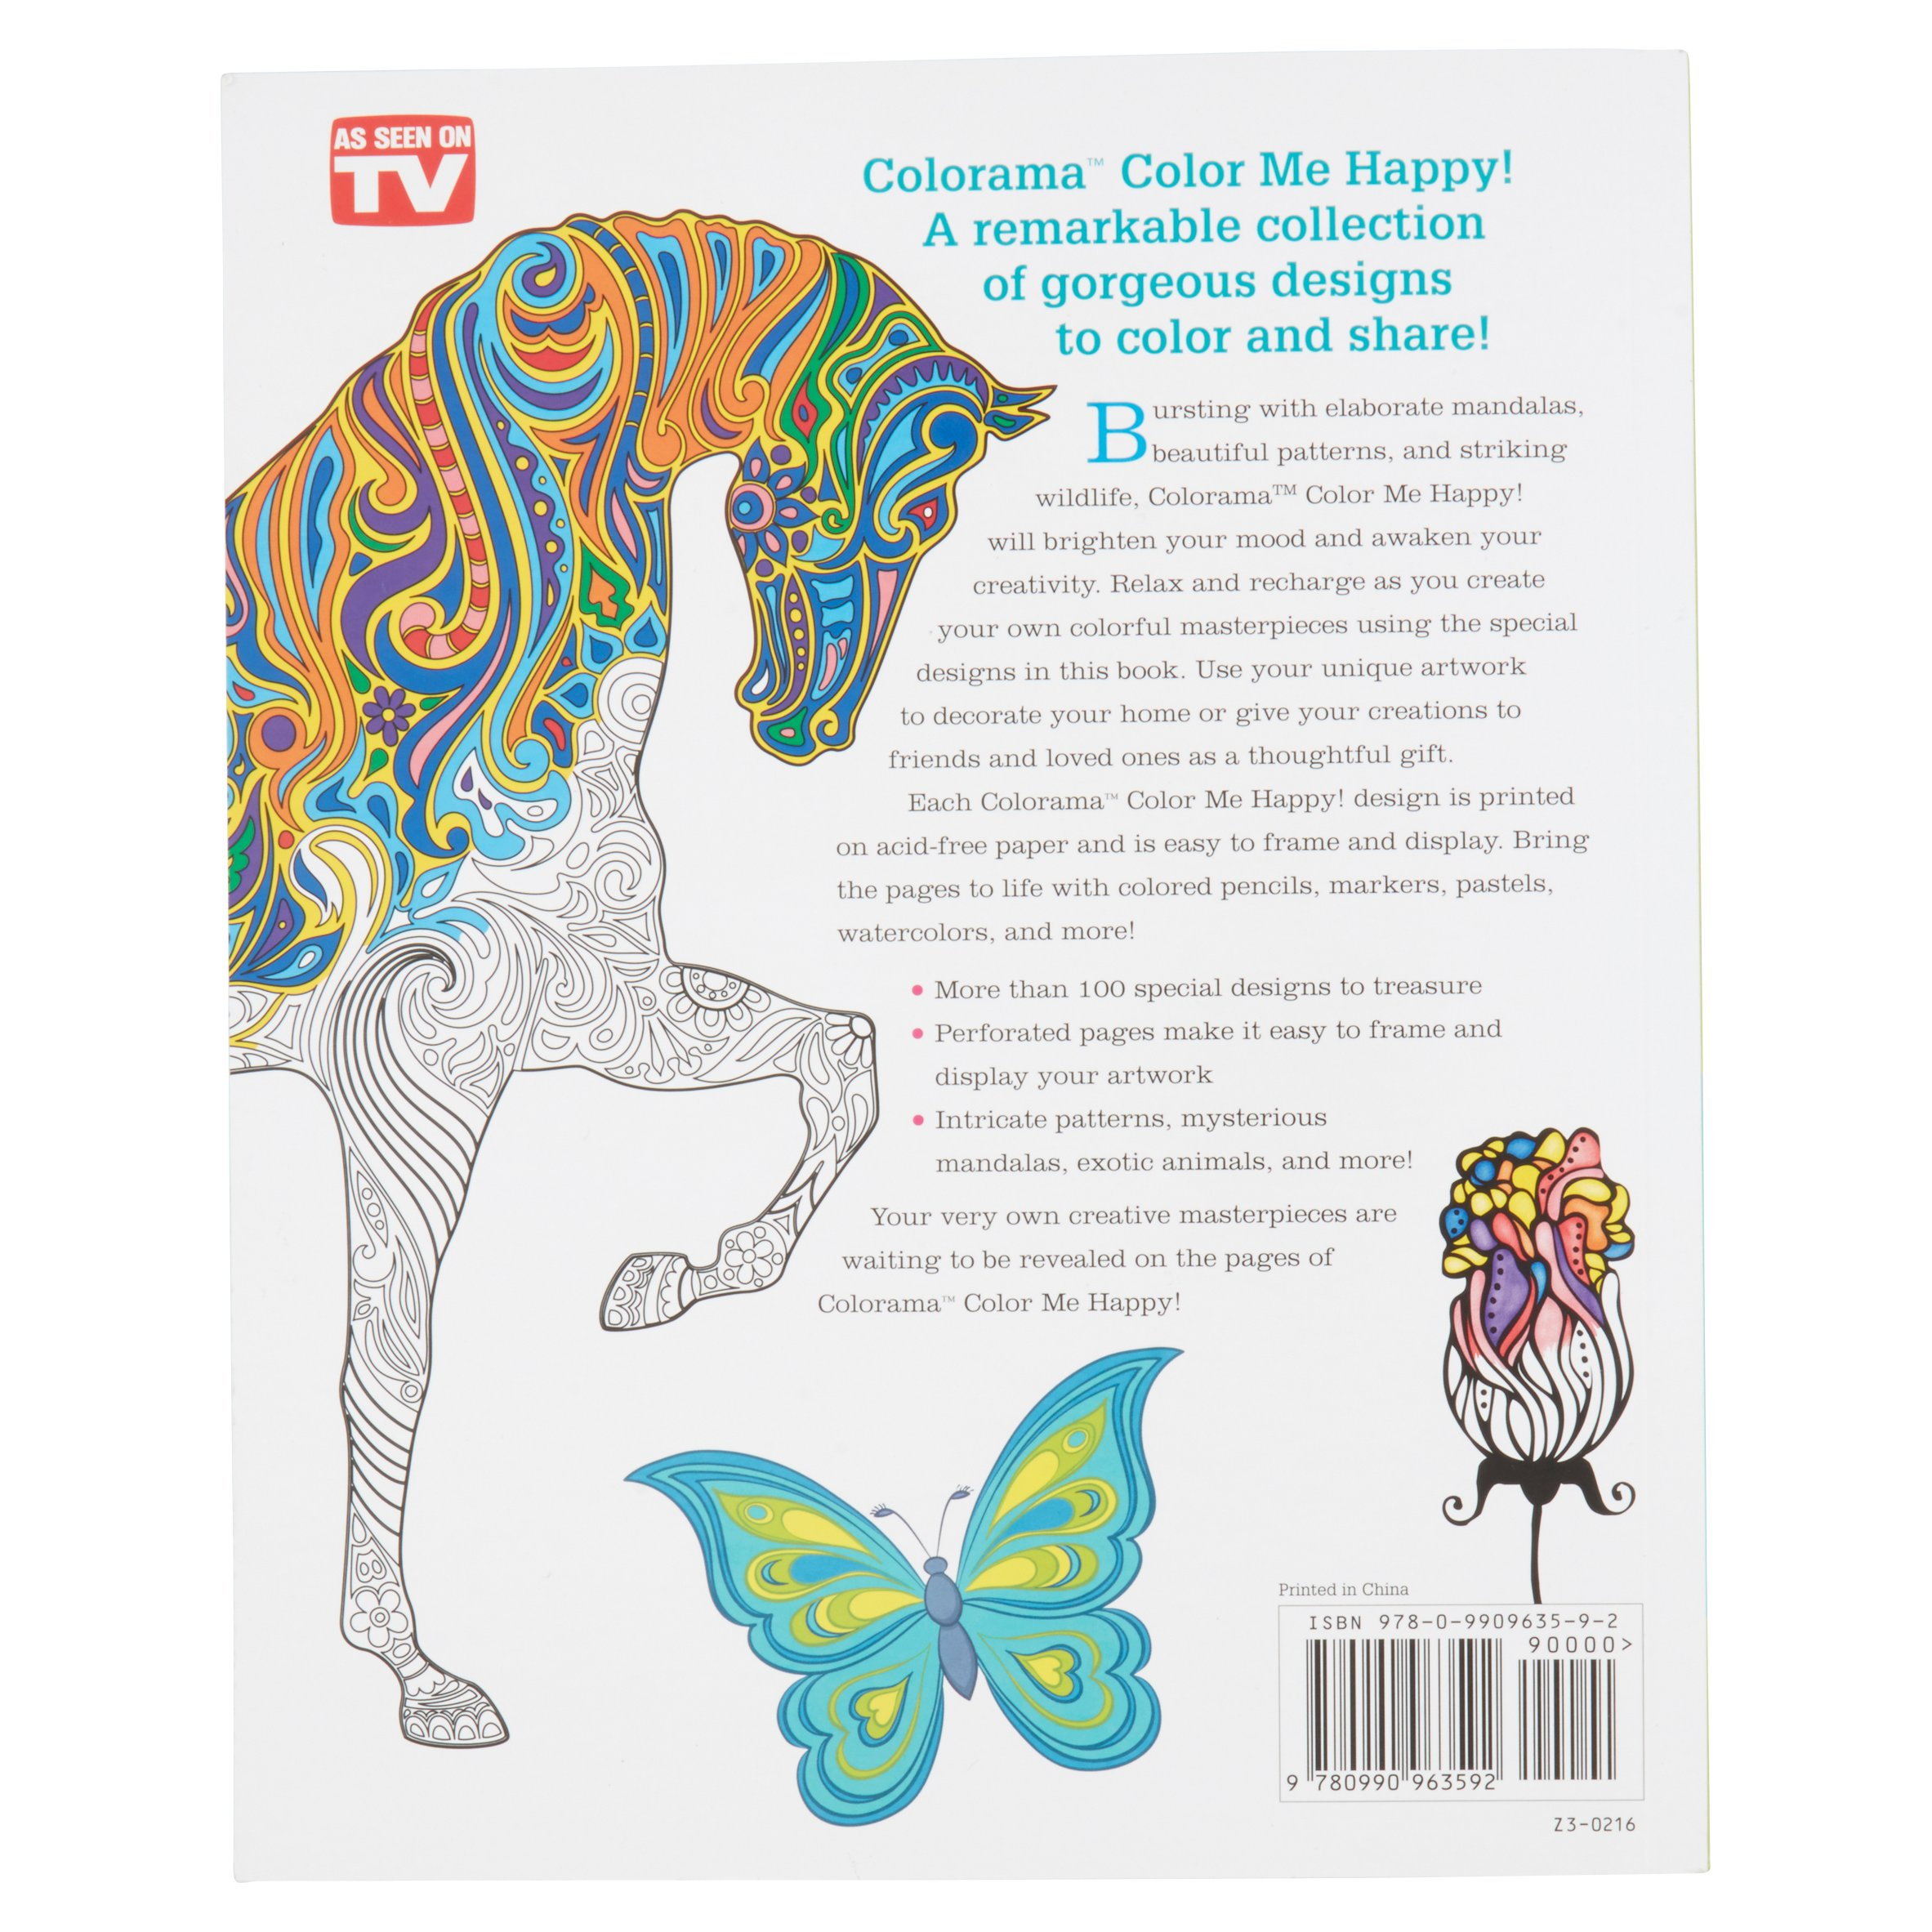 3a5b4a3d 3e87 41e9 bd97 bd3bebd3f229_1.7e25b69b3fba3a107c19b205ff53ef10 including as seen on tv colorama coloring book walmart  on colorama coloring book phone number together with contact us to find out more about colorama coloring book on colorama coloring book phone number furthermore colorama coloring book official site create something on colorama coloring book phone number additionally amazon colorama coloring book for adults with 12 colored on colorama coloring book phone number